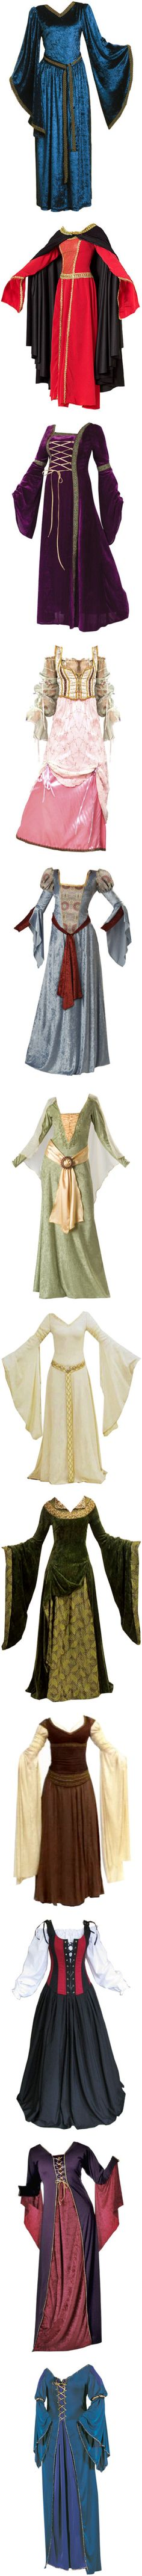 """Medival Gowns II"" by savagedamsel ❤ liked on Polyvore"